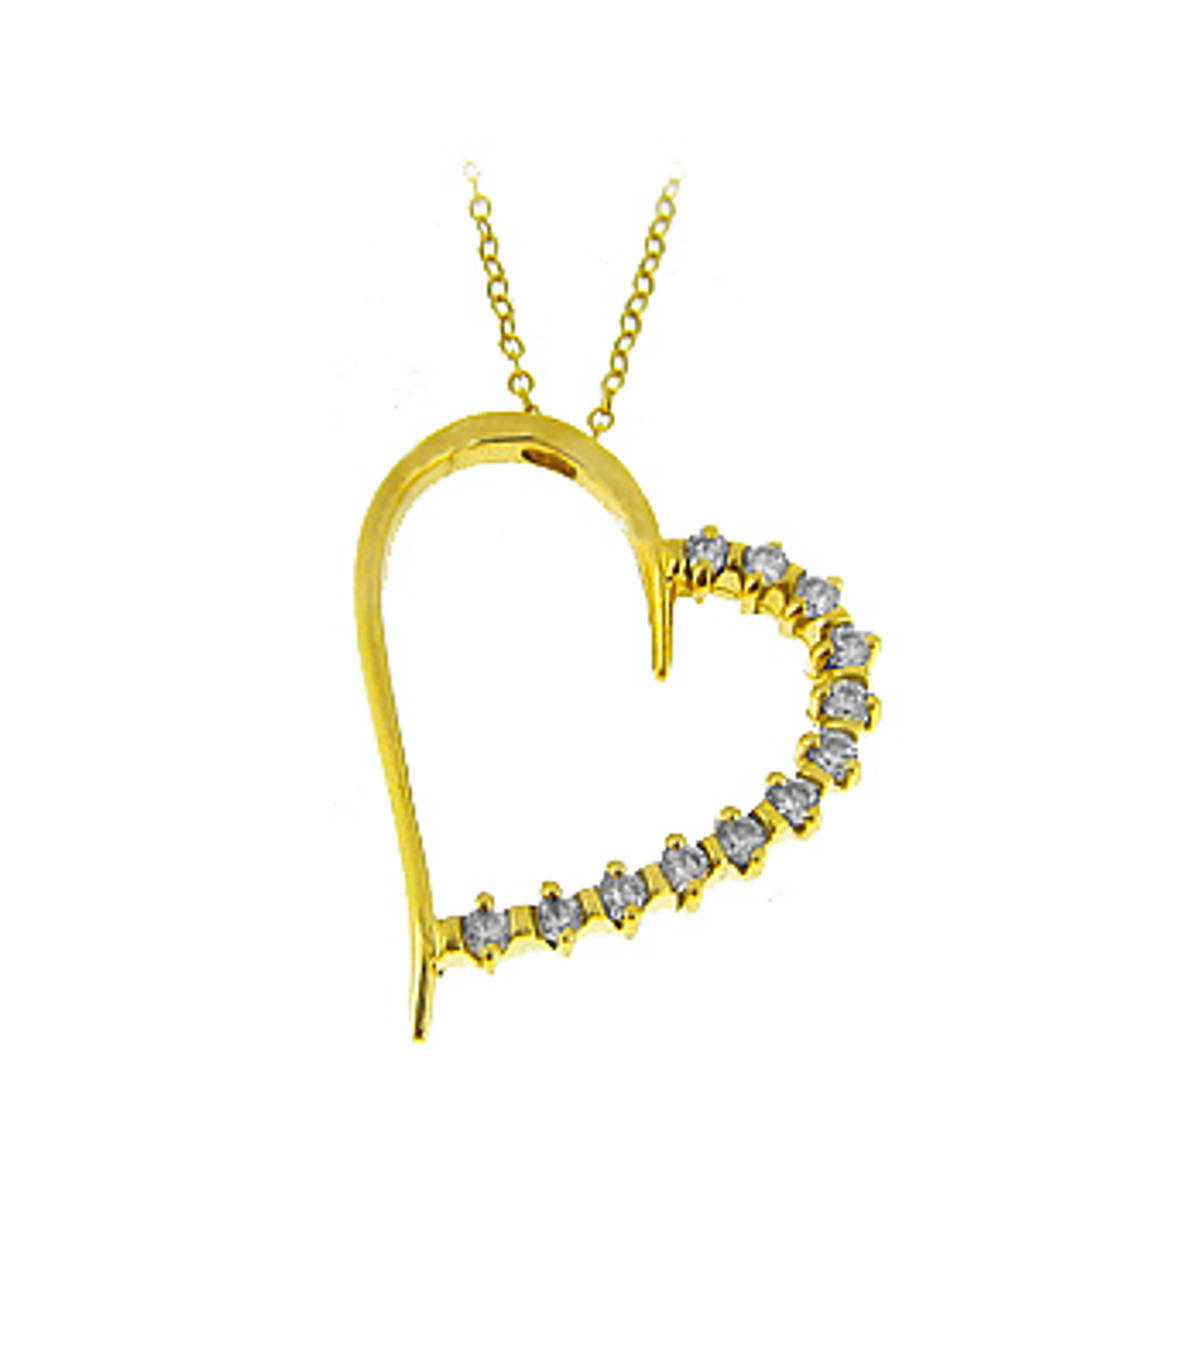 "9k yellow gold open heart CZ pendant on 9k yellow gold 18"" chain 9k yellow gold 18"" chainMetal: 9k yellow gold Length  2.9cm  Width  2.1cm Made in Ireland"